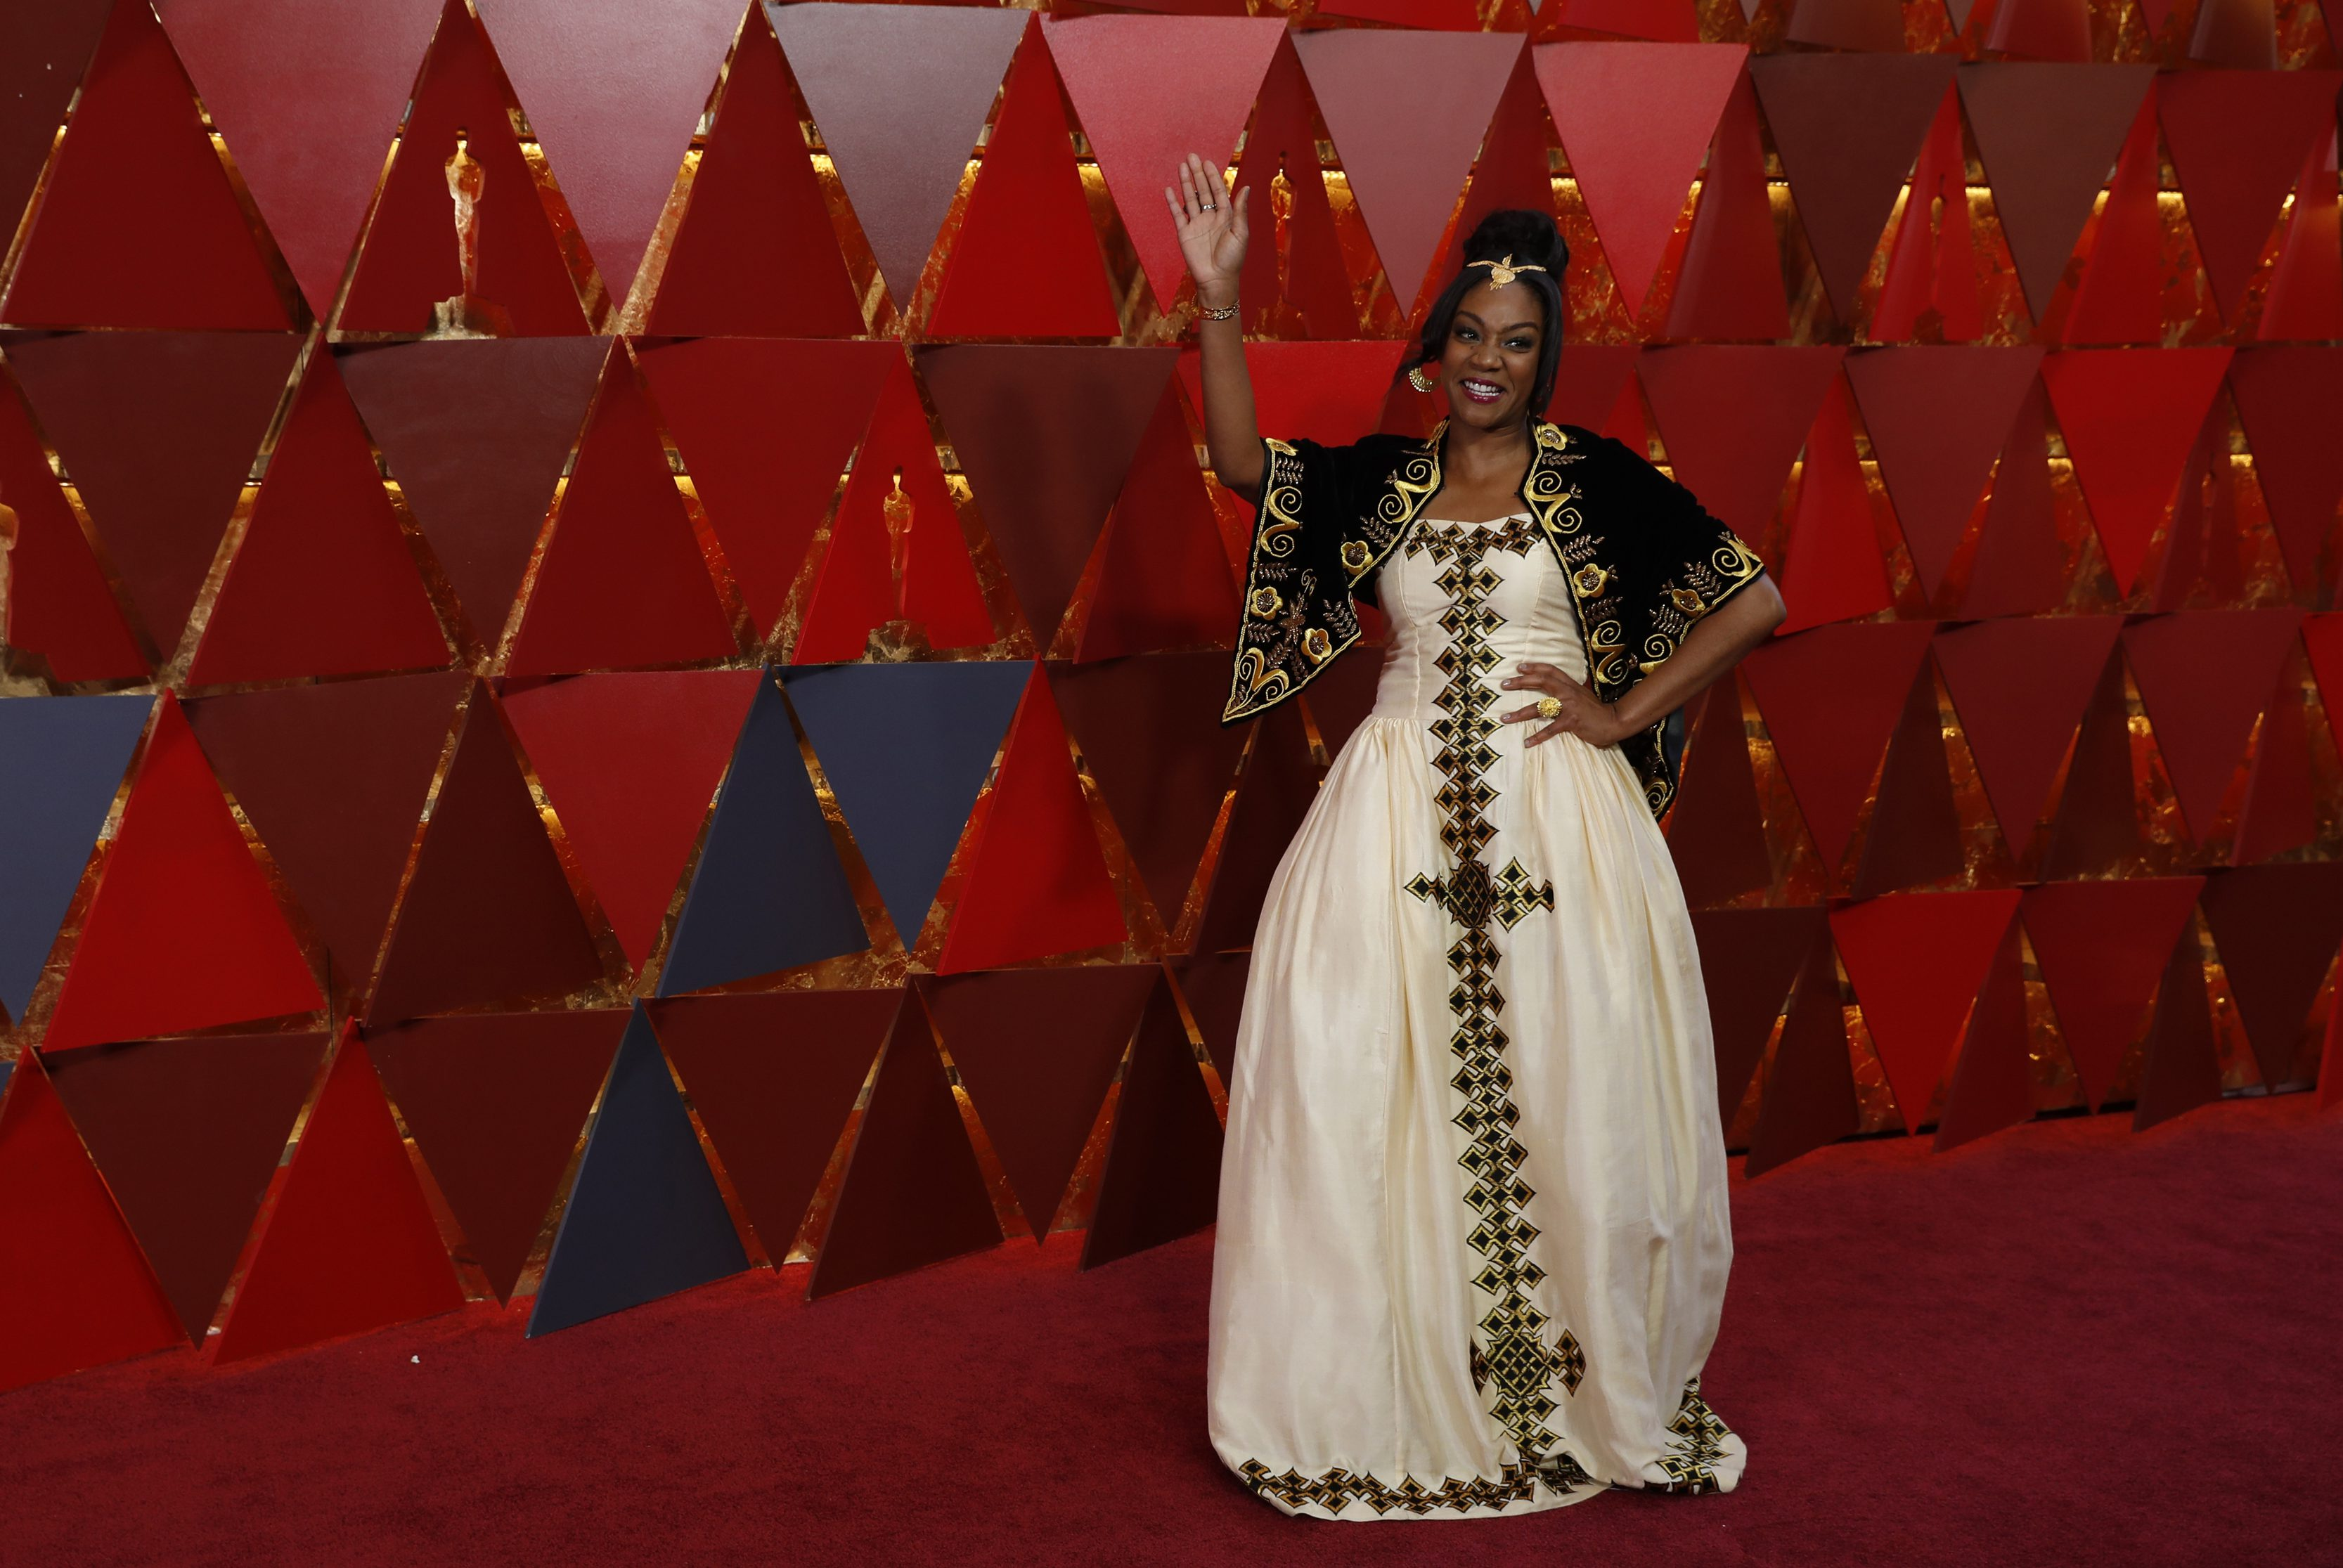 90th Academy Awards - Oscars Arrivals - Hollywood, California, U.S., 04/03/2018 - Comedian and actress Tiffany Haddish wears a dress from designer from Eritrea in honor of her father.